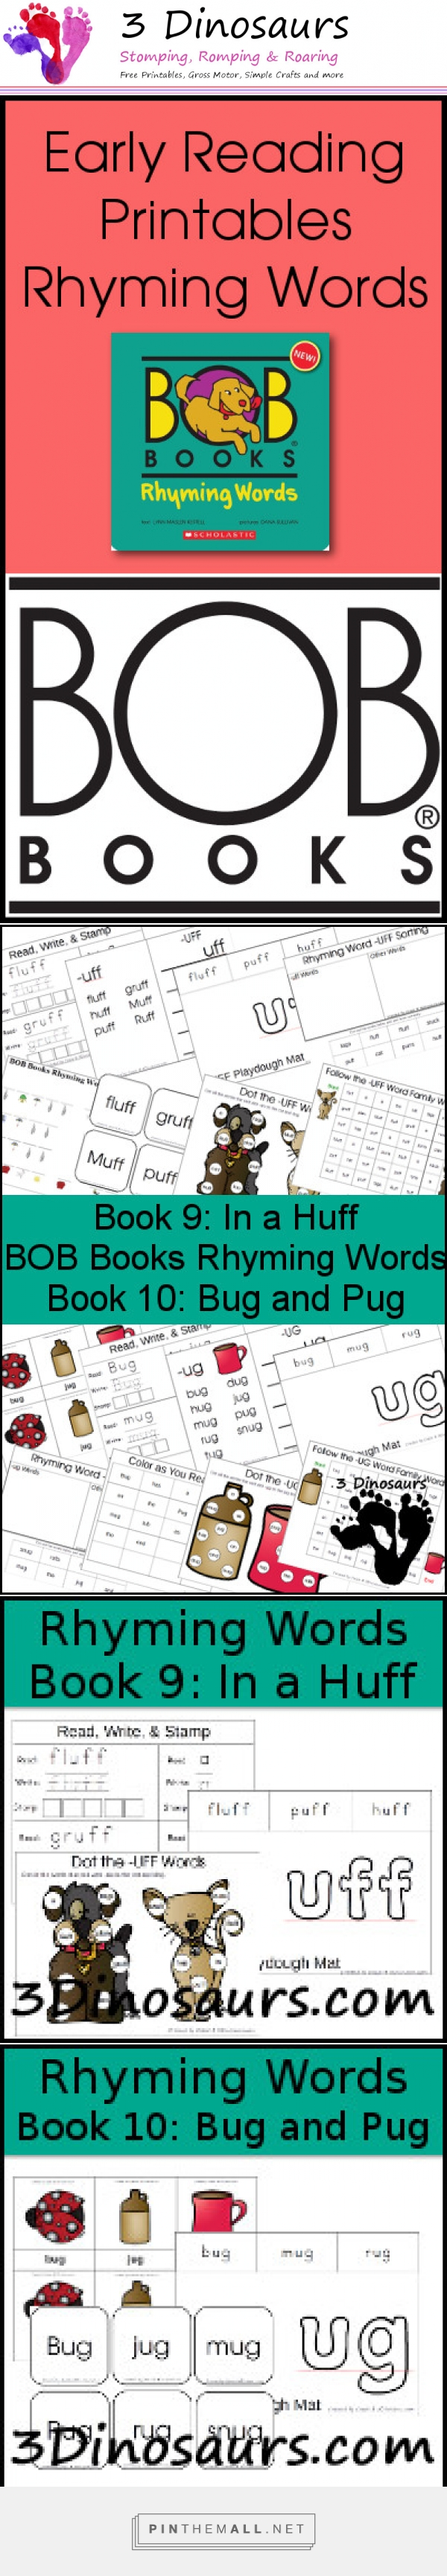 Early Reading Printables: BOB Books Rhyming Words Books 9 & 10 ...